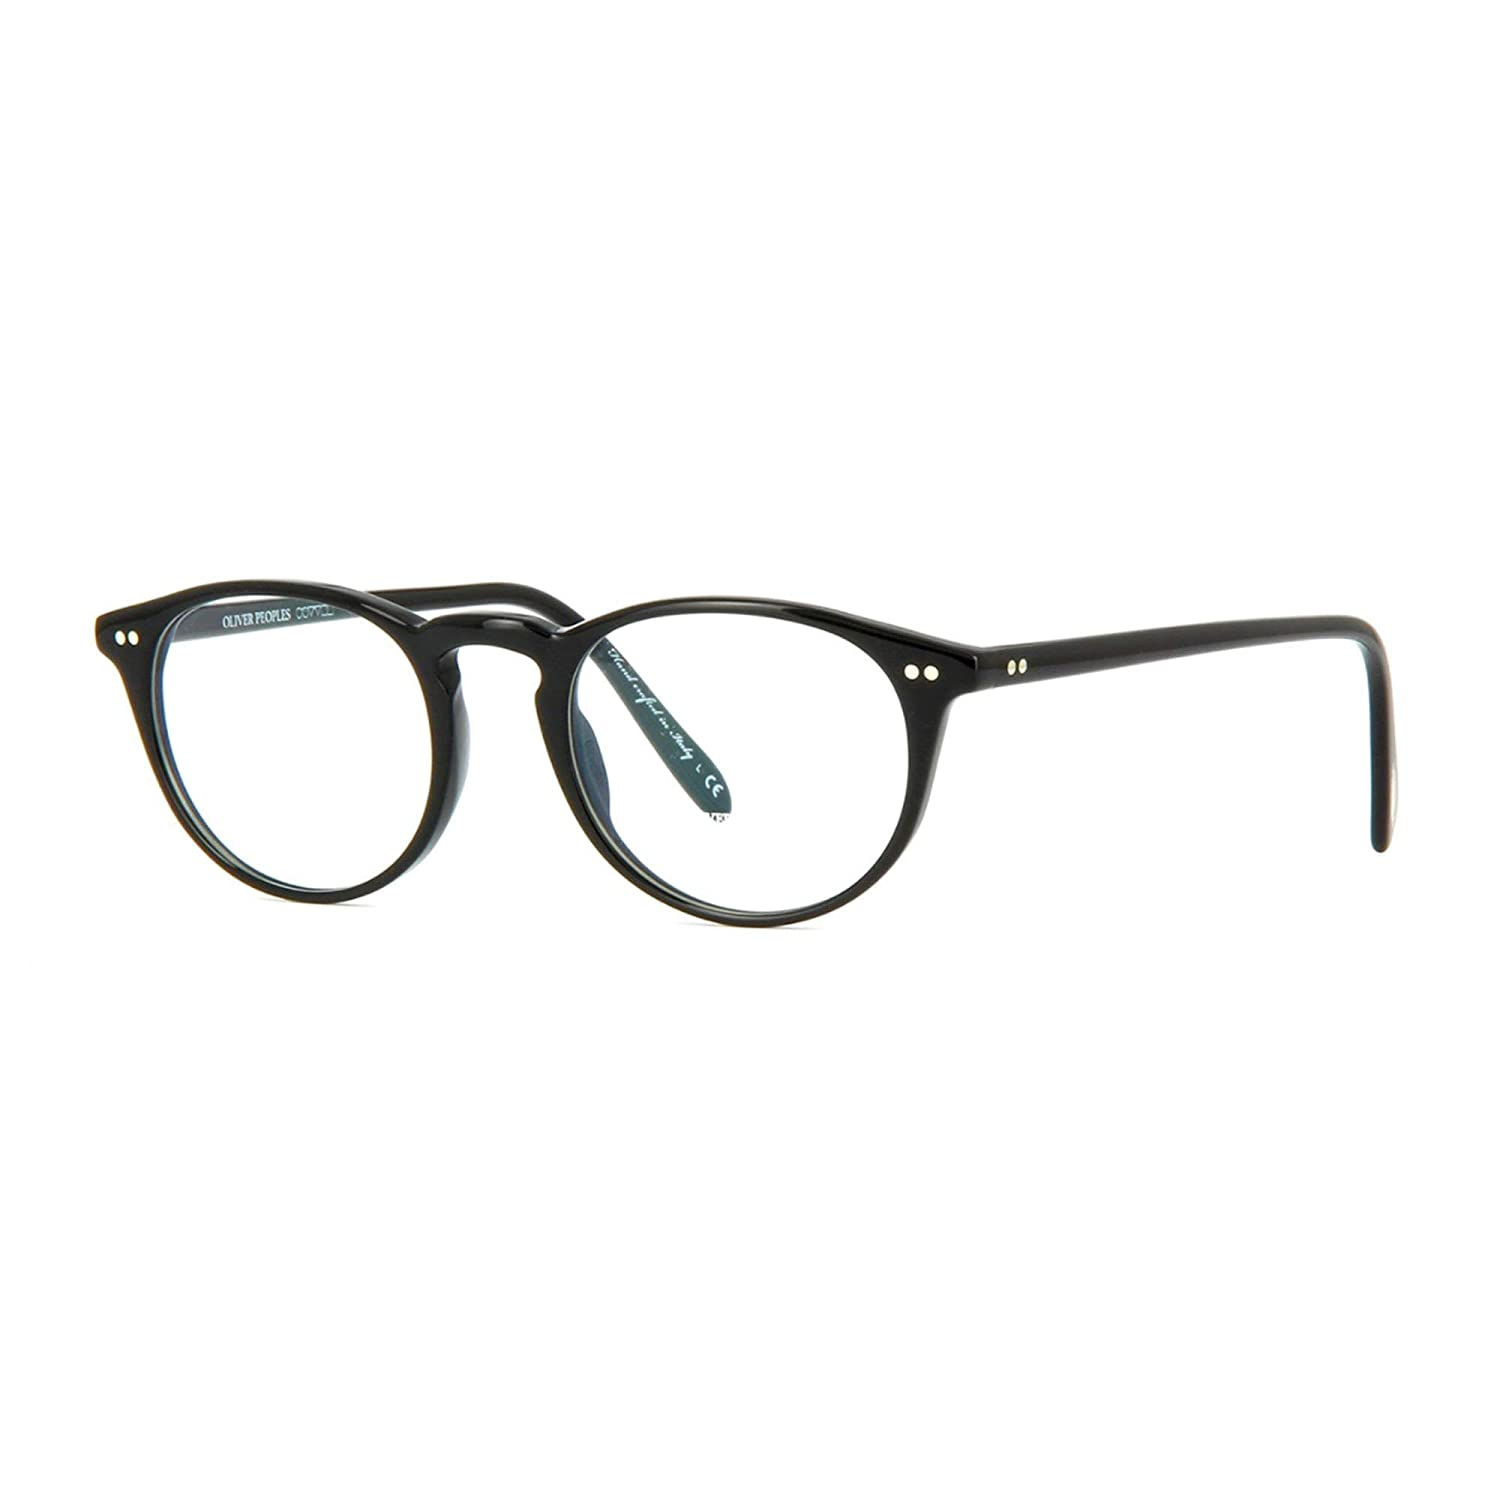 3827a3c158 Amazon.com  Oliver Peoples 5004 Riley R Eyeglasses 1005 Black with Clear  Demo Lenses  Shoes